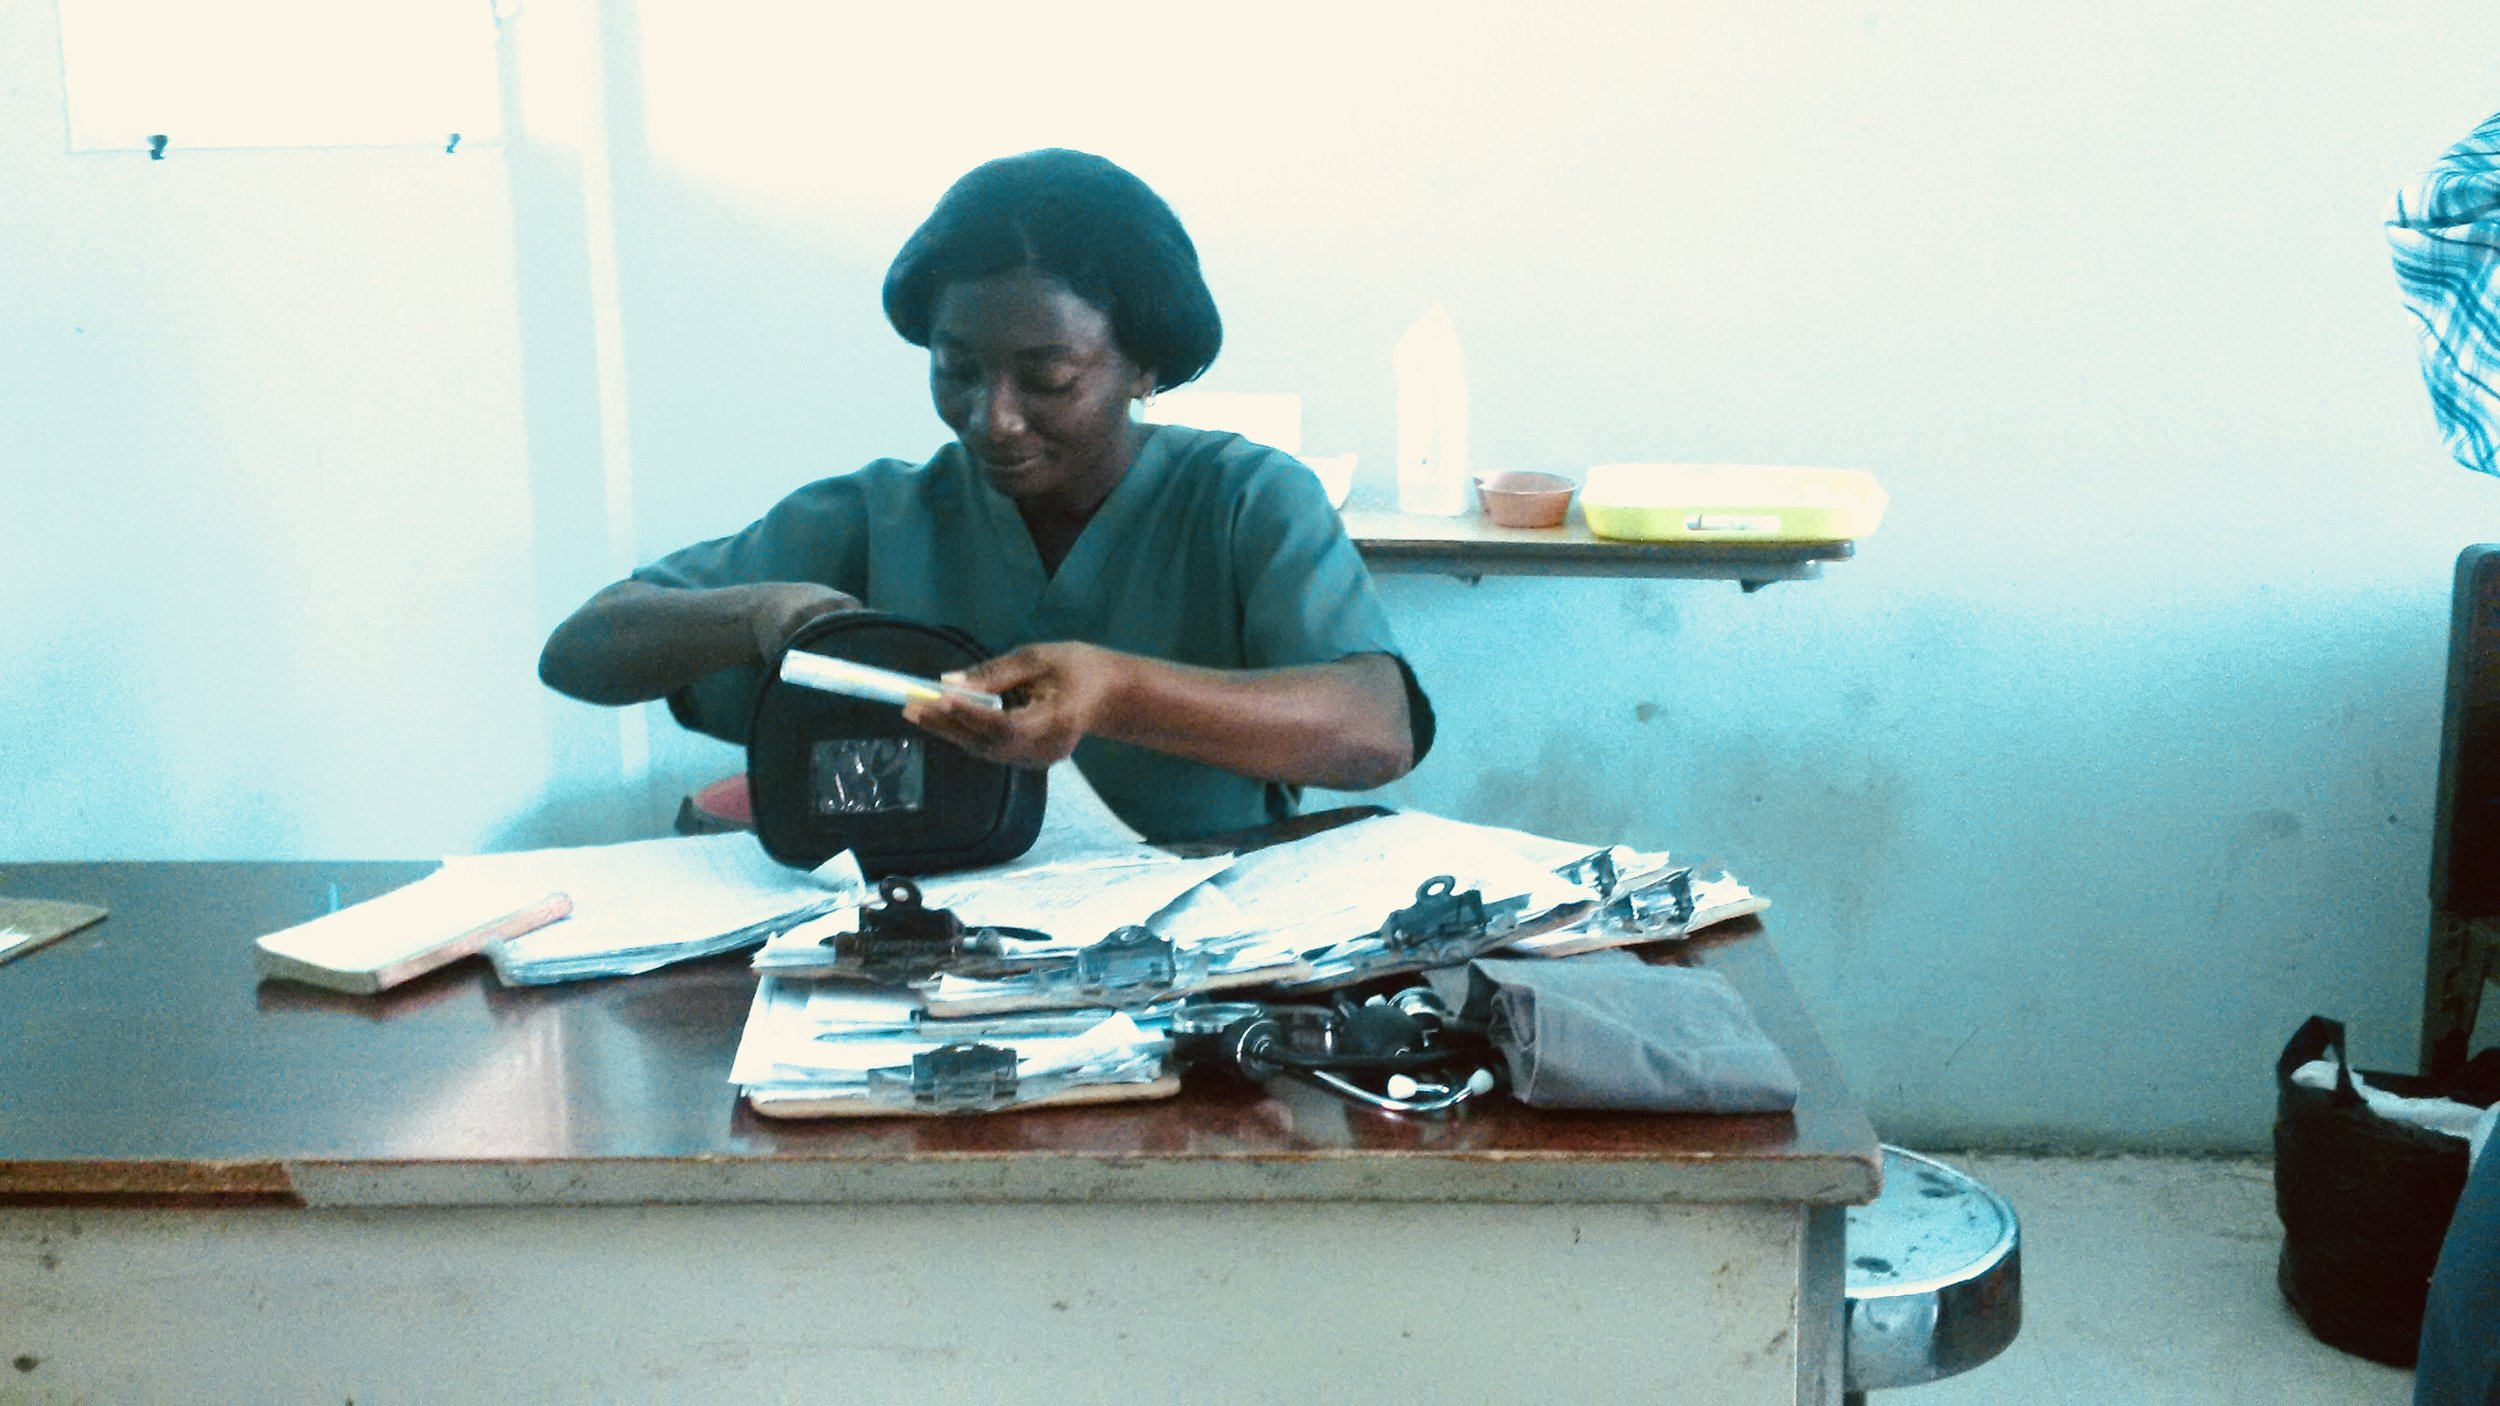 Midwife in Hinche, Haiti with her pile of charts on clipboards. The midwives loved when the volunteers would do their rounds so they could catch up on paperwork. We loved doing patient care all day and not having to chart at all.